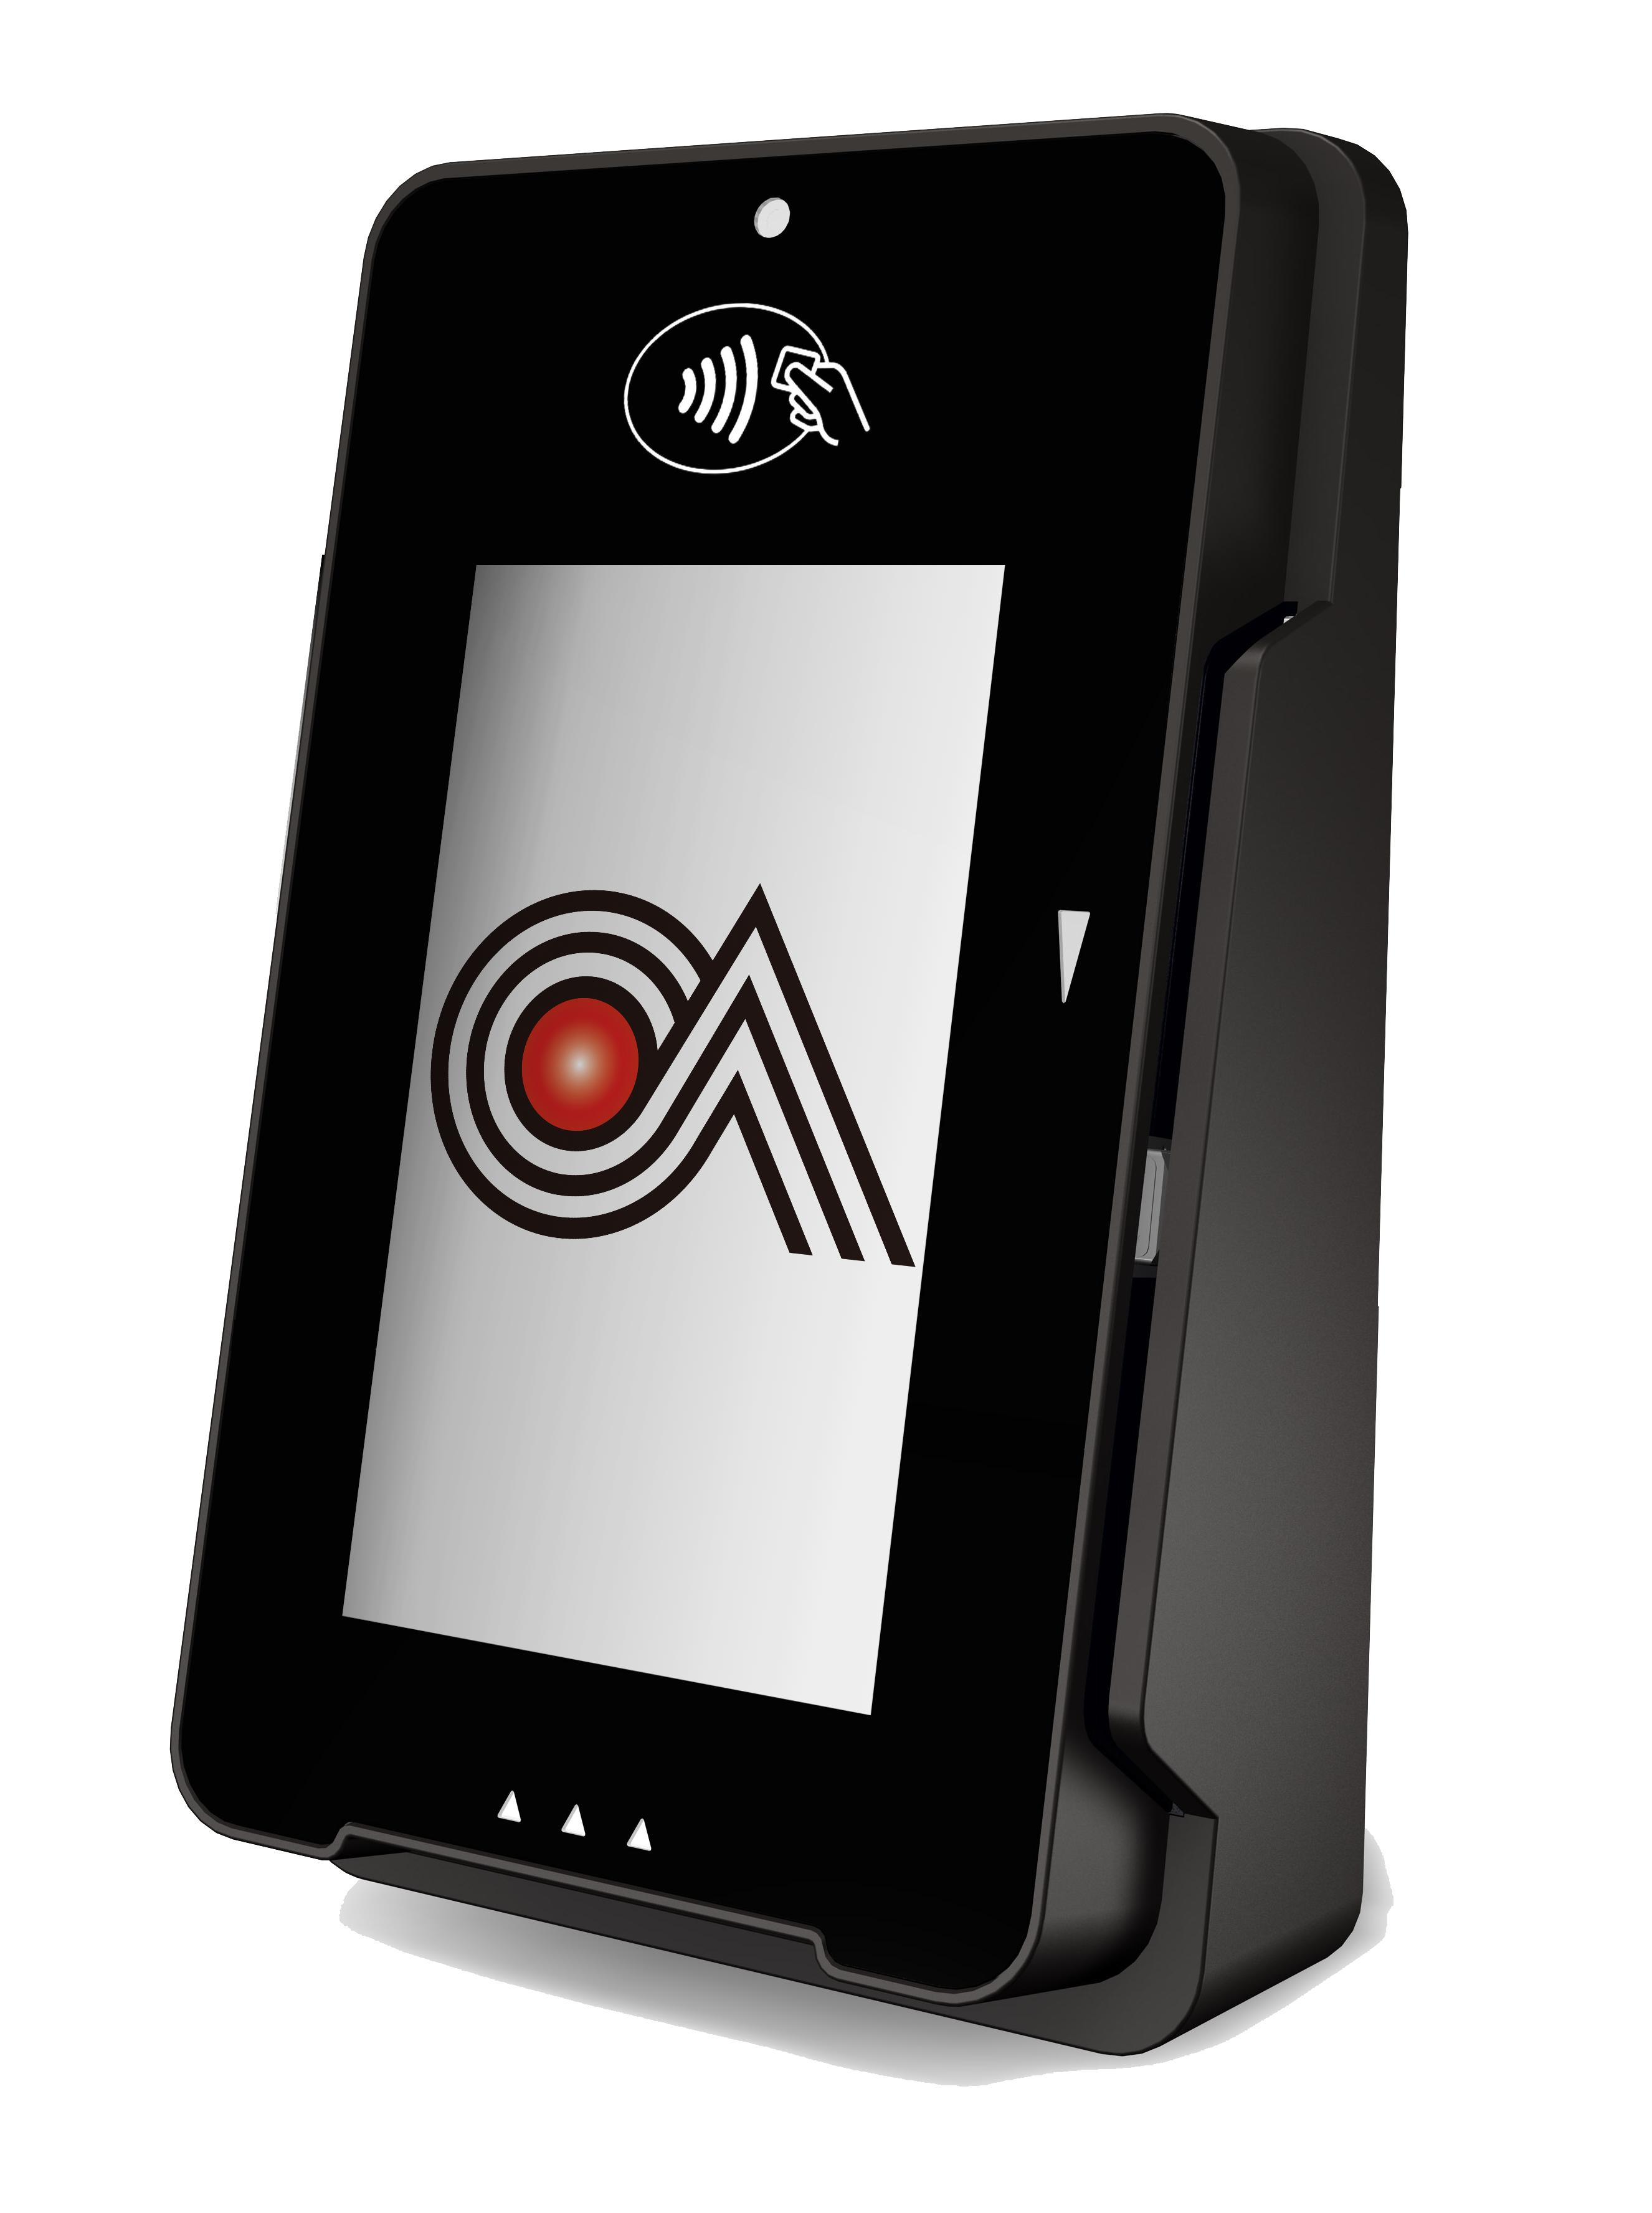 Castle Technologies' mPOS terminal device with their logo